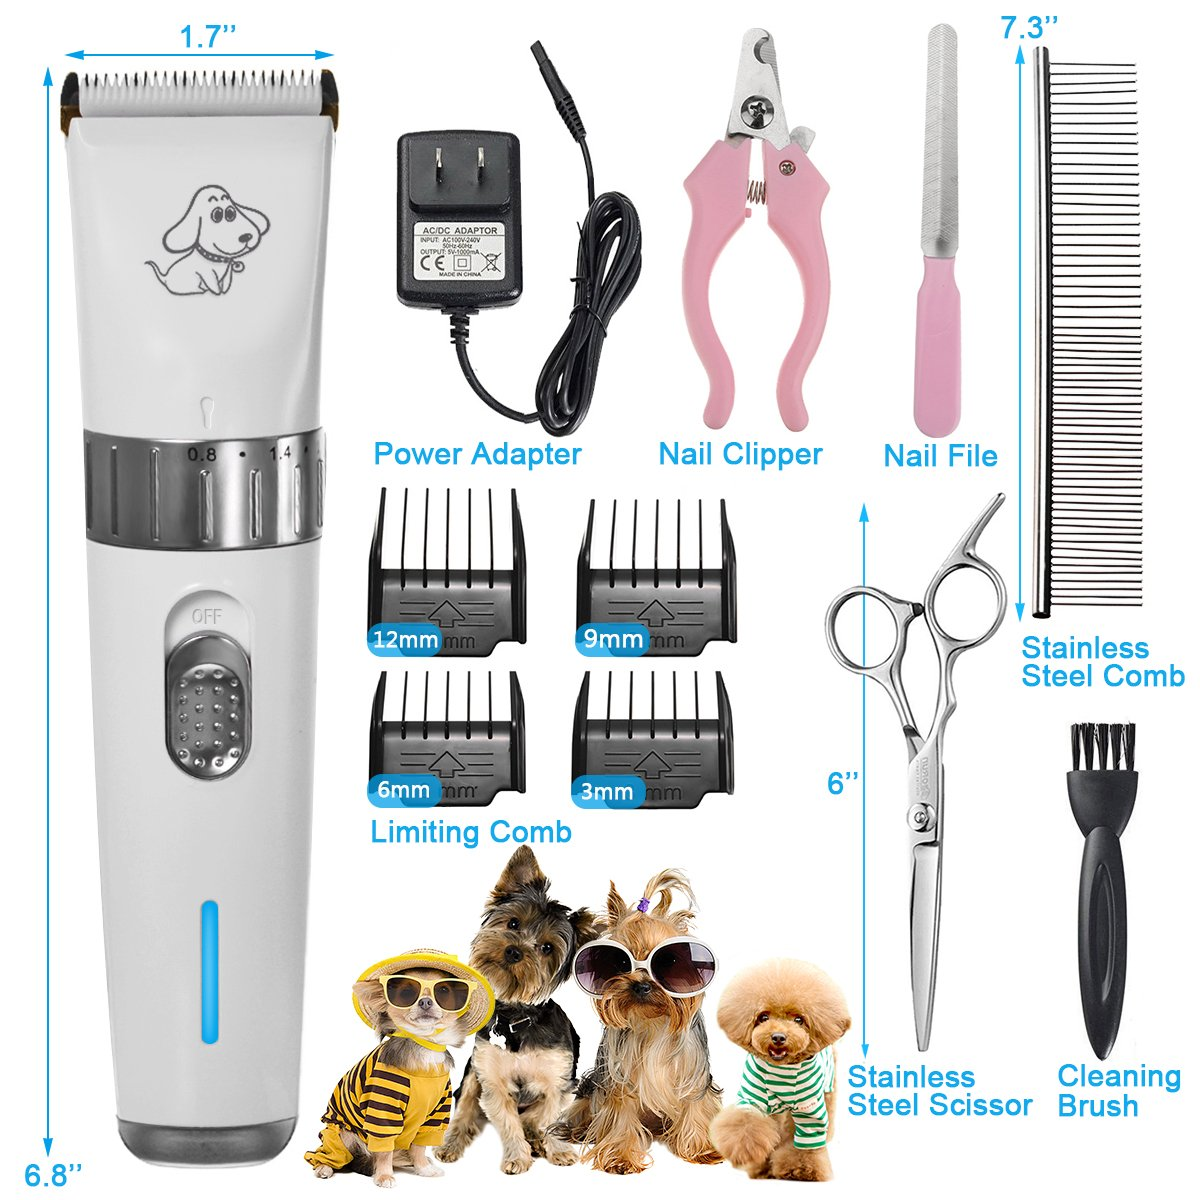 FOCUSPET Pet Grooming Clippers, 2 Level Speed Adjustable Rechargeable Cordless Dog Grooming Clippers Kit Low Noise Electric Hair Trimming Clippers Set for Small Medium Large Dogs Cats Animals by FOCUSPET (Image #2)